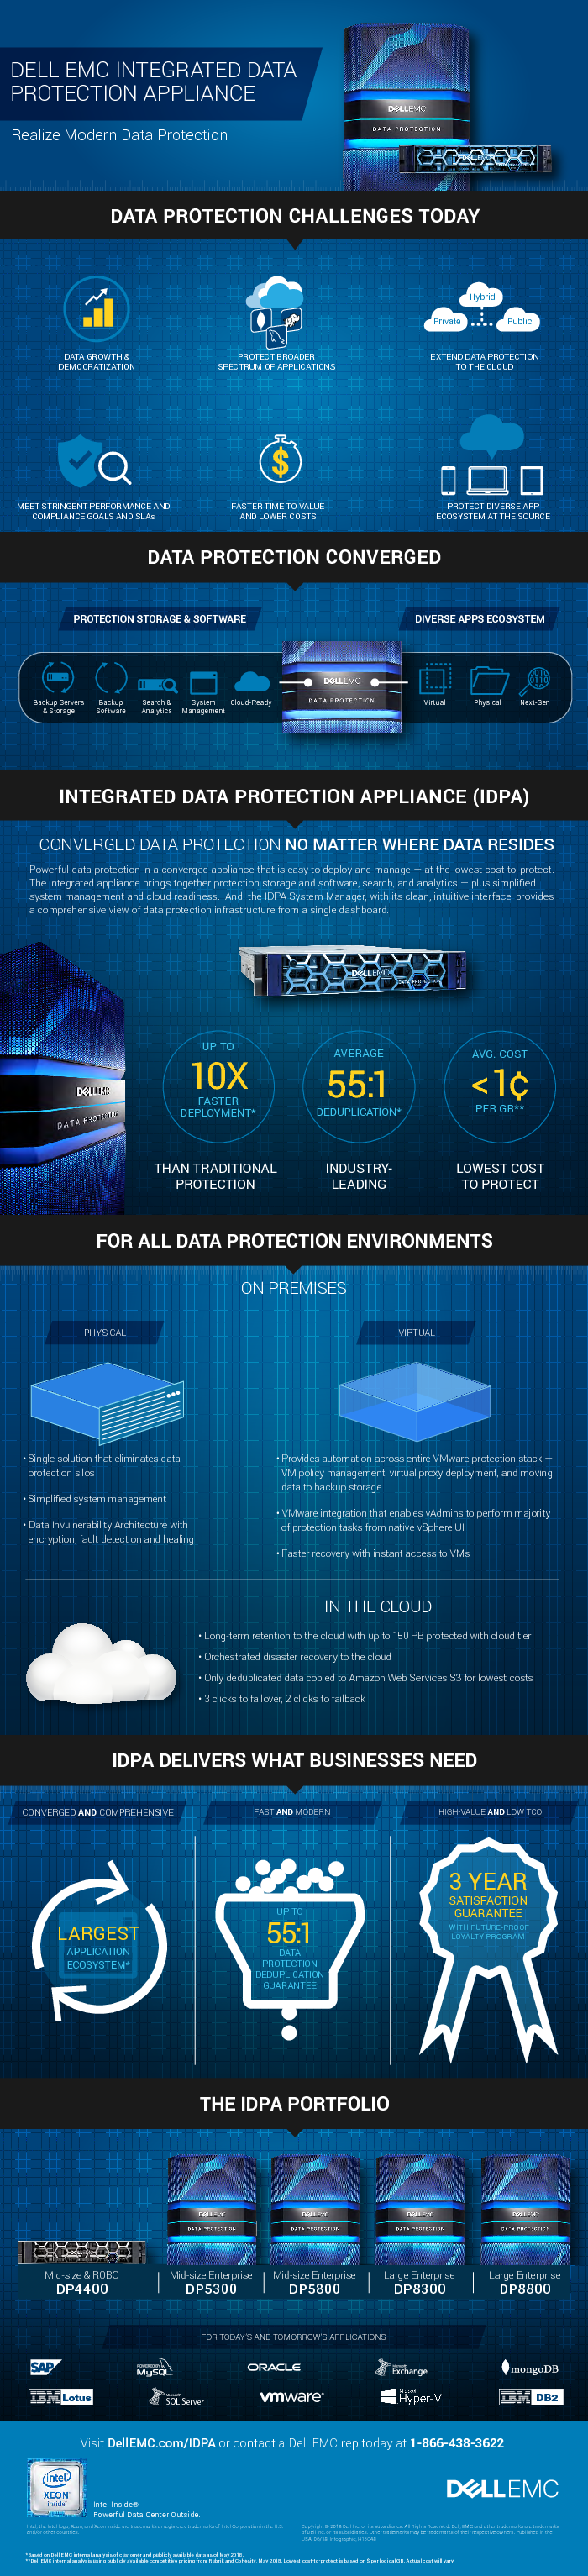 Square cropped thumb original infographic idpa business value data protection